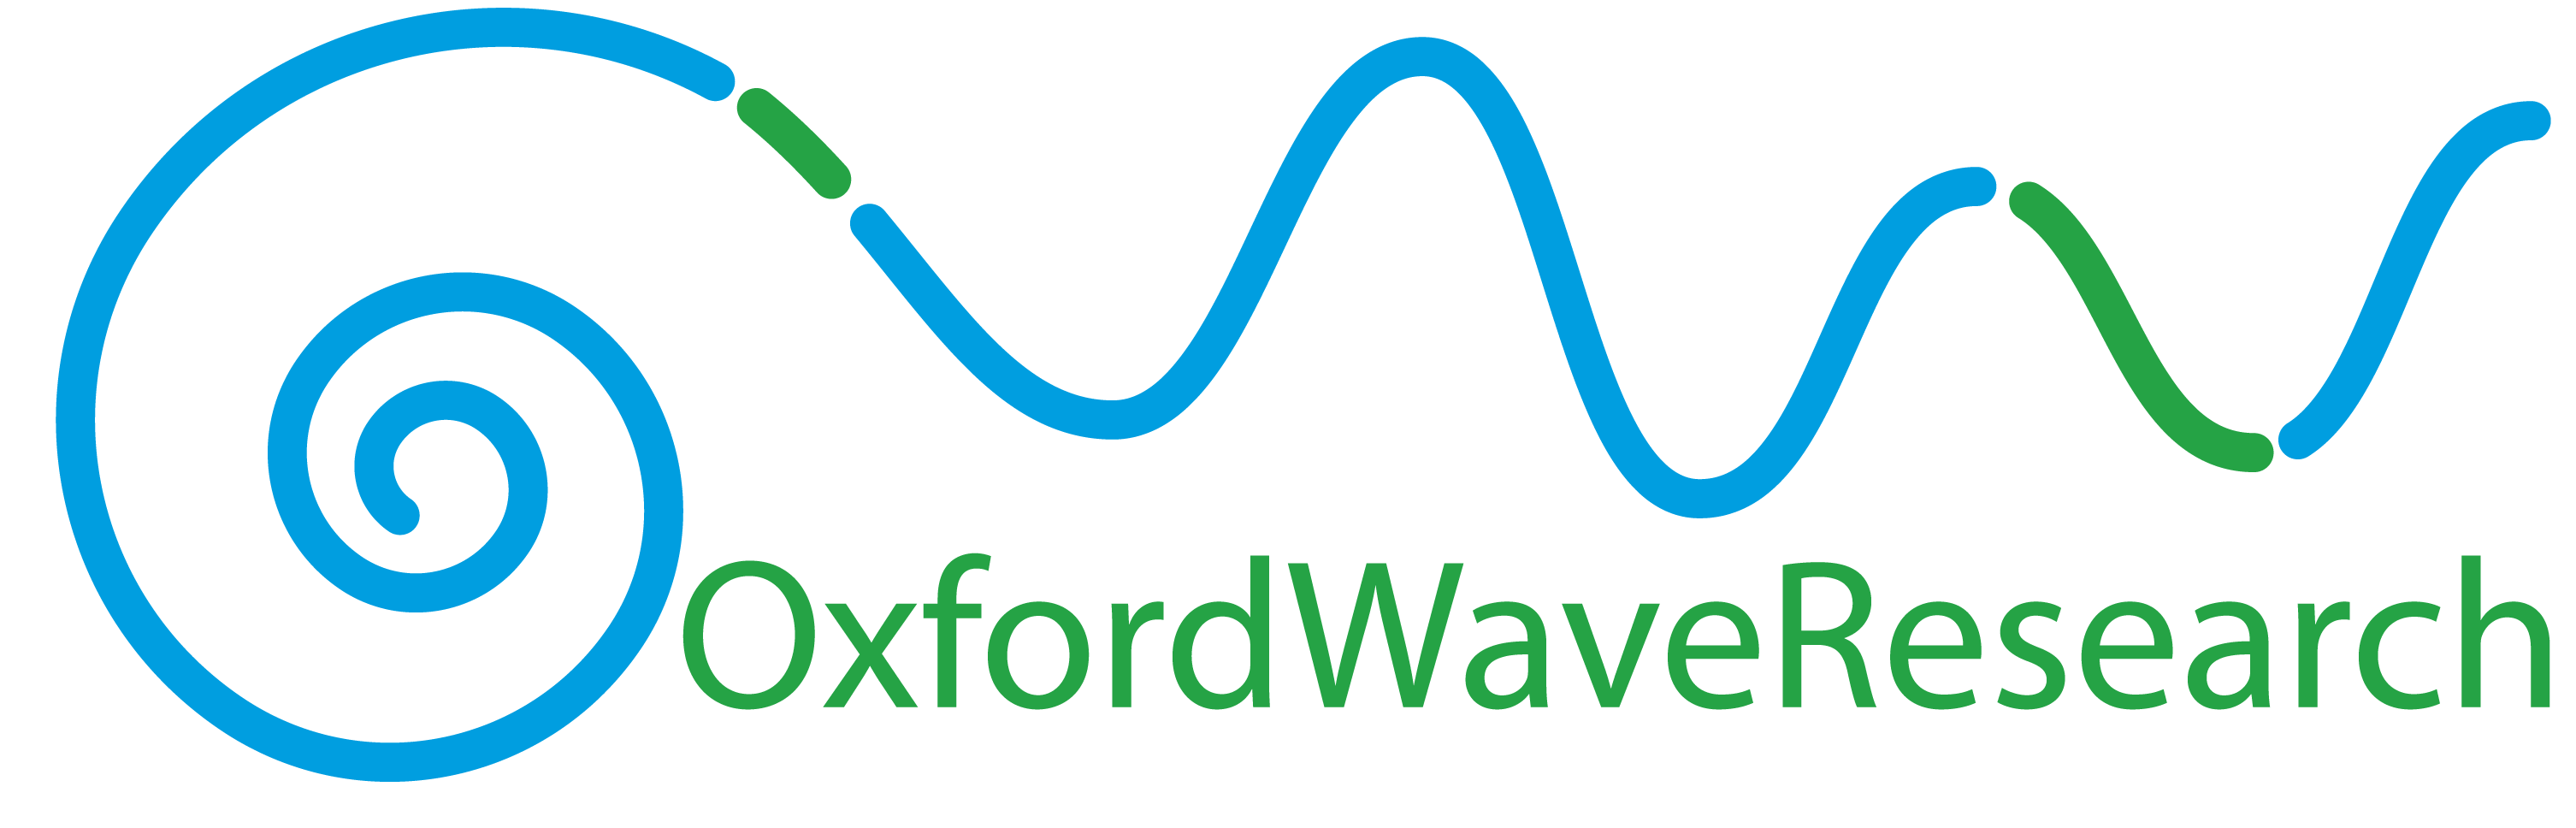 Oxford Wave Research logo